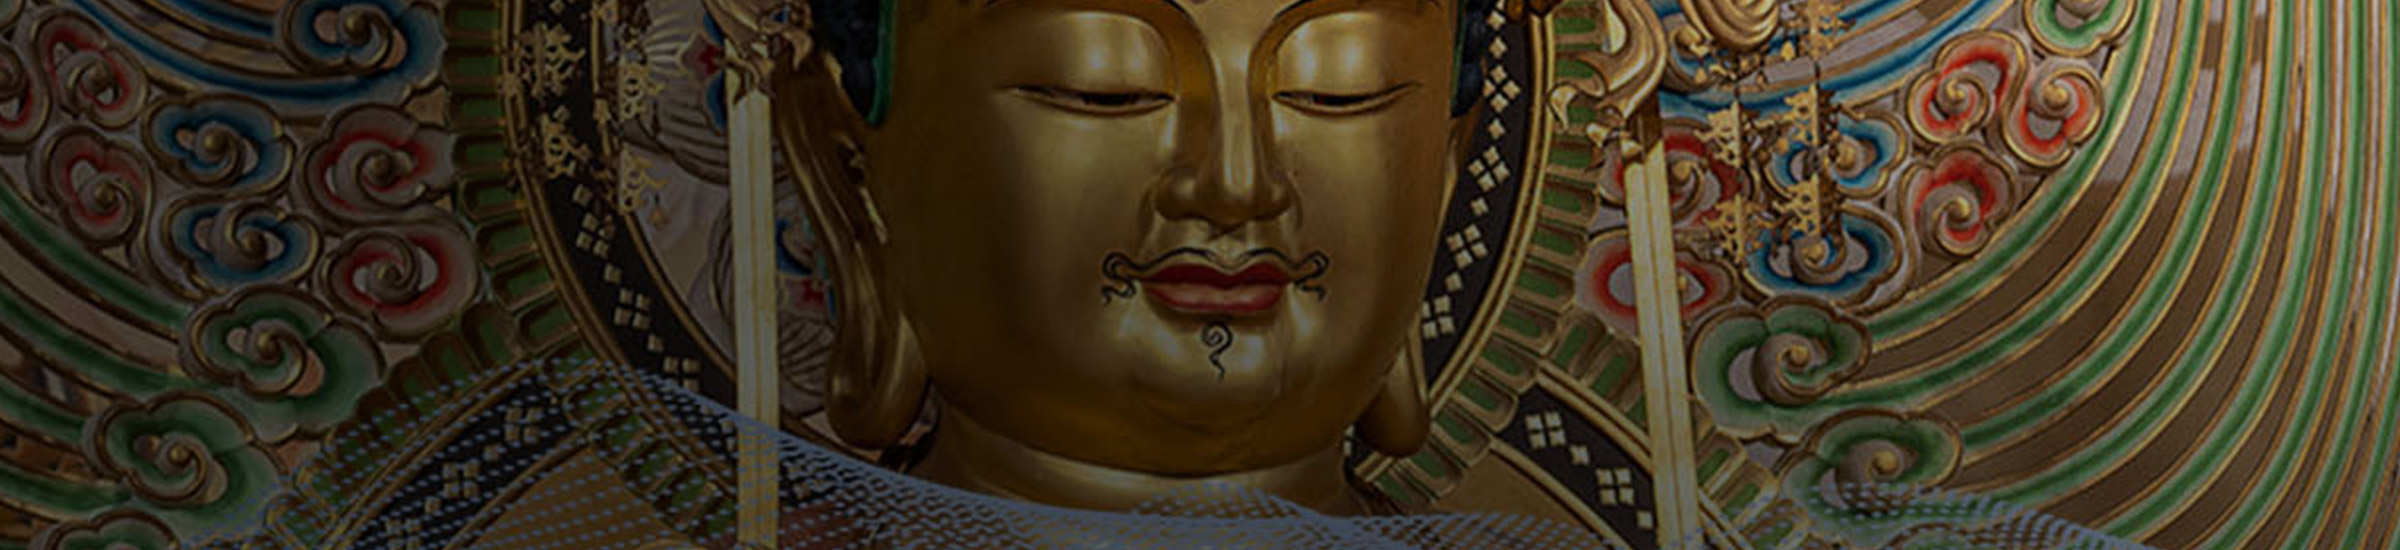 buddha-Experience-Meditation-in-Singapore-withlocals